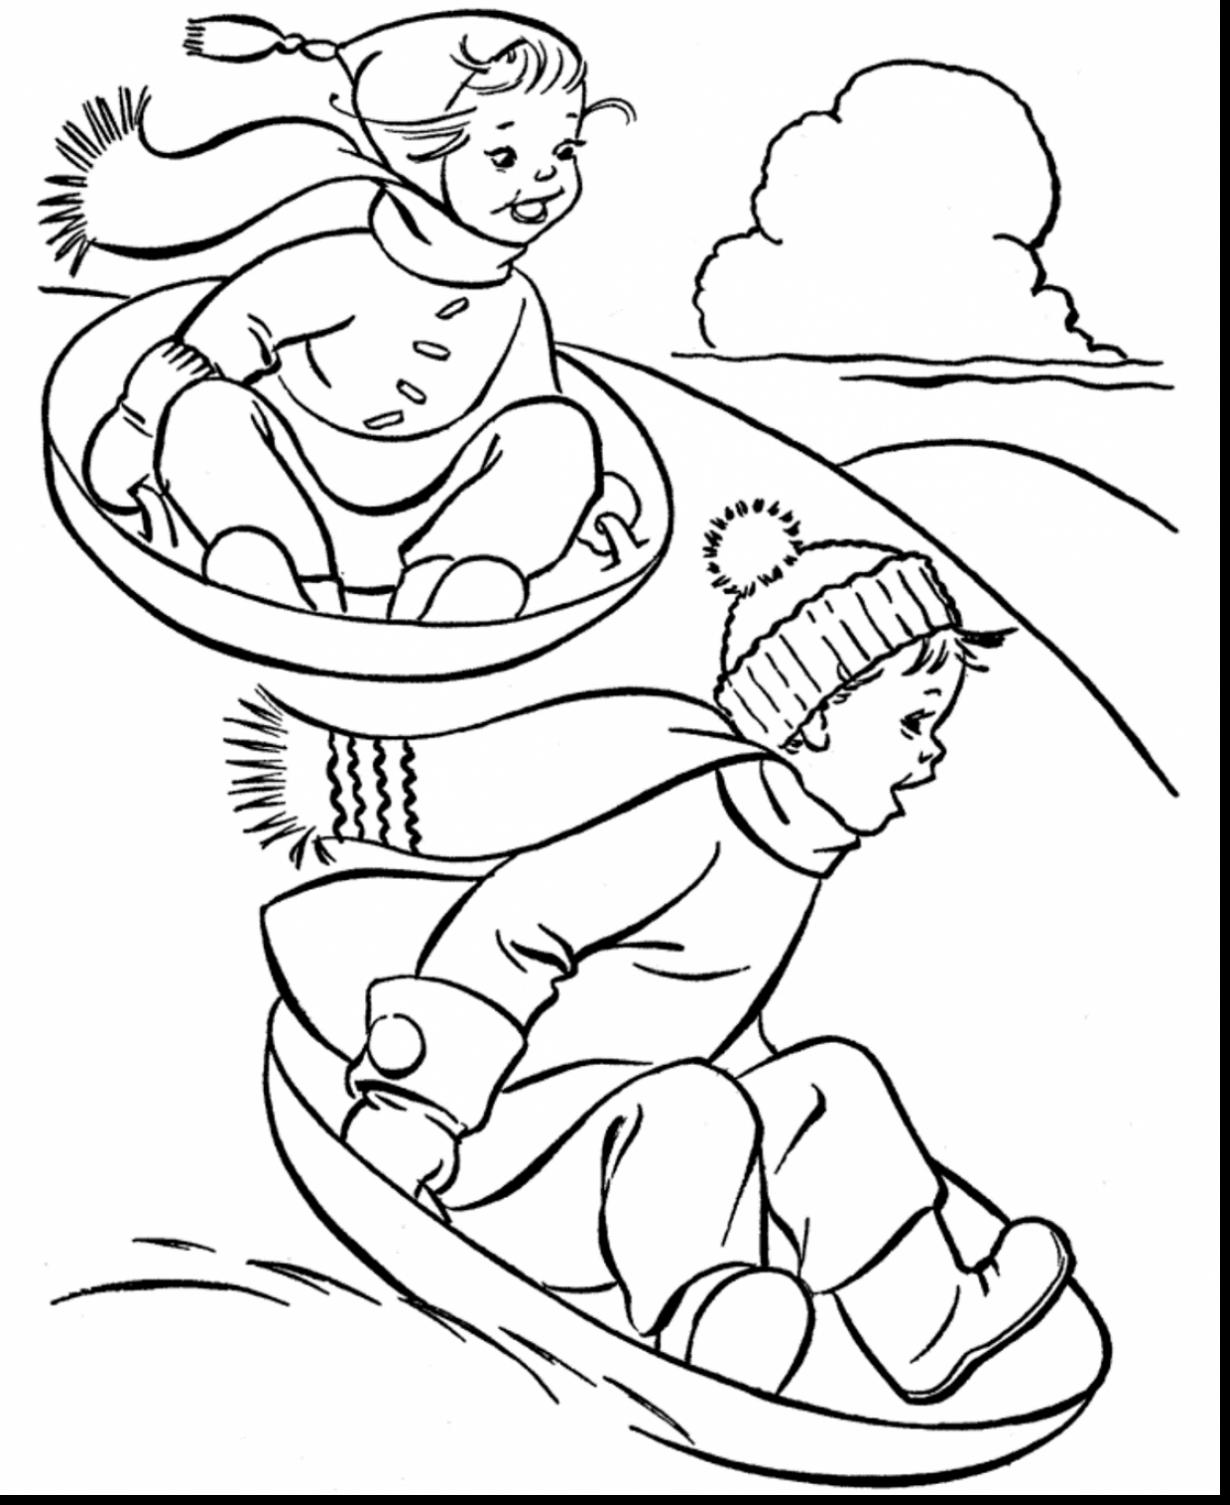 graphic regarding Free Winter Coloring Pages Printable identify Winter season Coloring Internet pages Printable at  Absolutely free